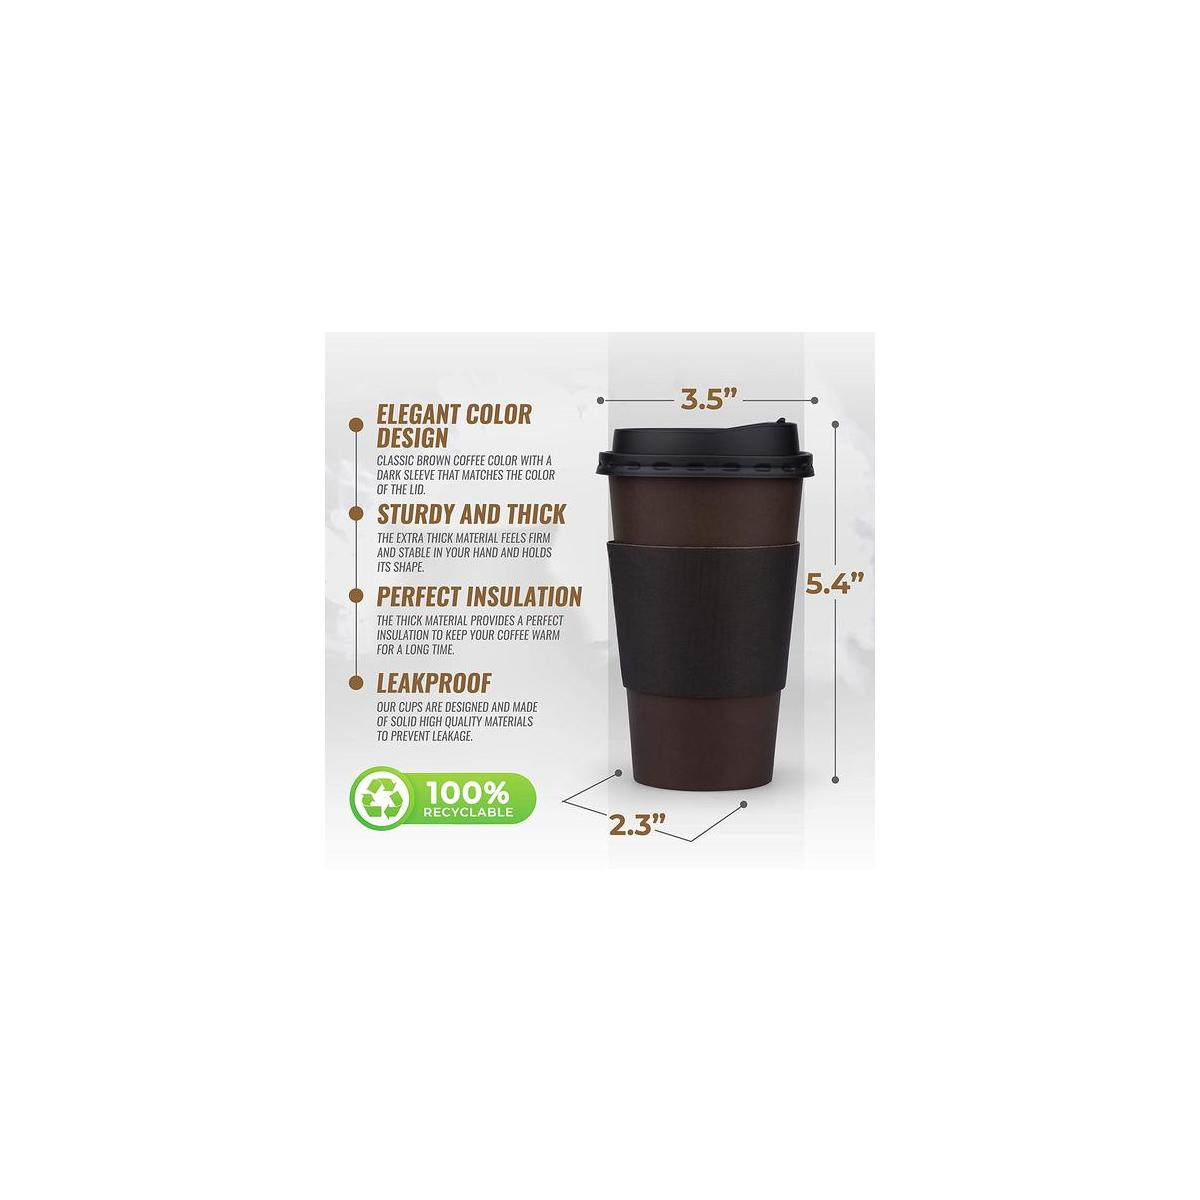 100 Pack Disposable Coffee Cups 16 oz  - Premium Quality 16 Oz Paper Coffee Cups with Lids to prevent leaks and Sleeves for comfortable Cup holding